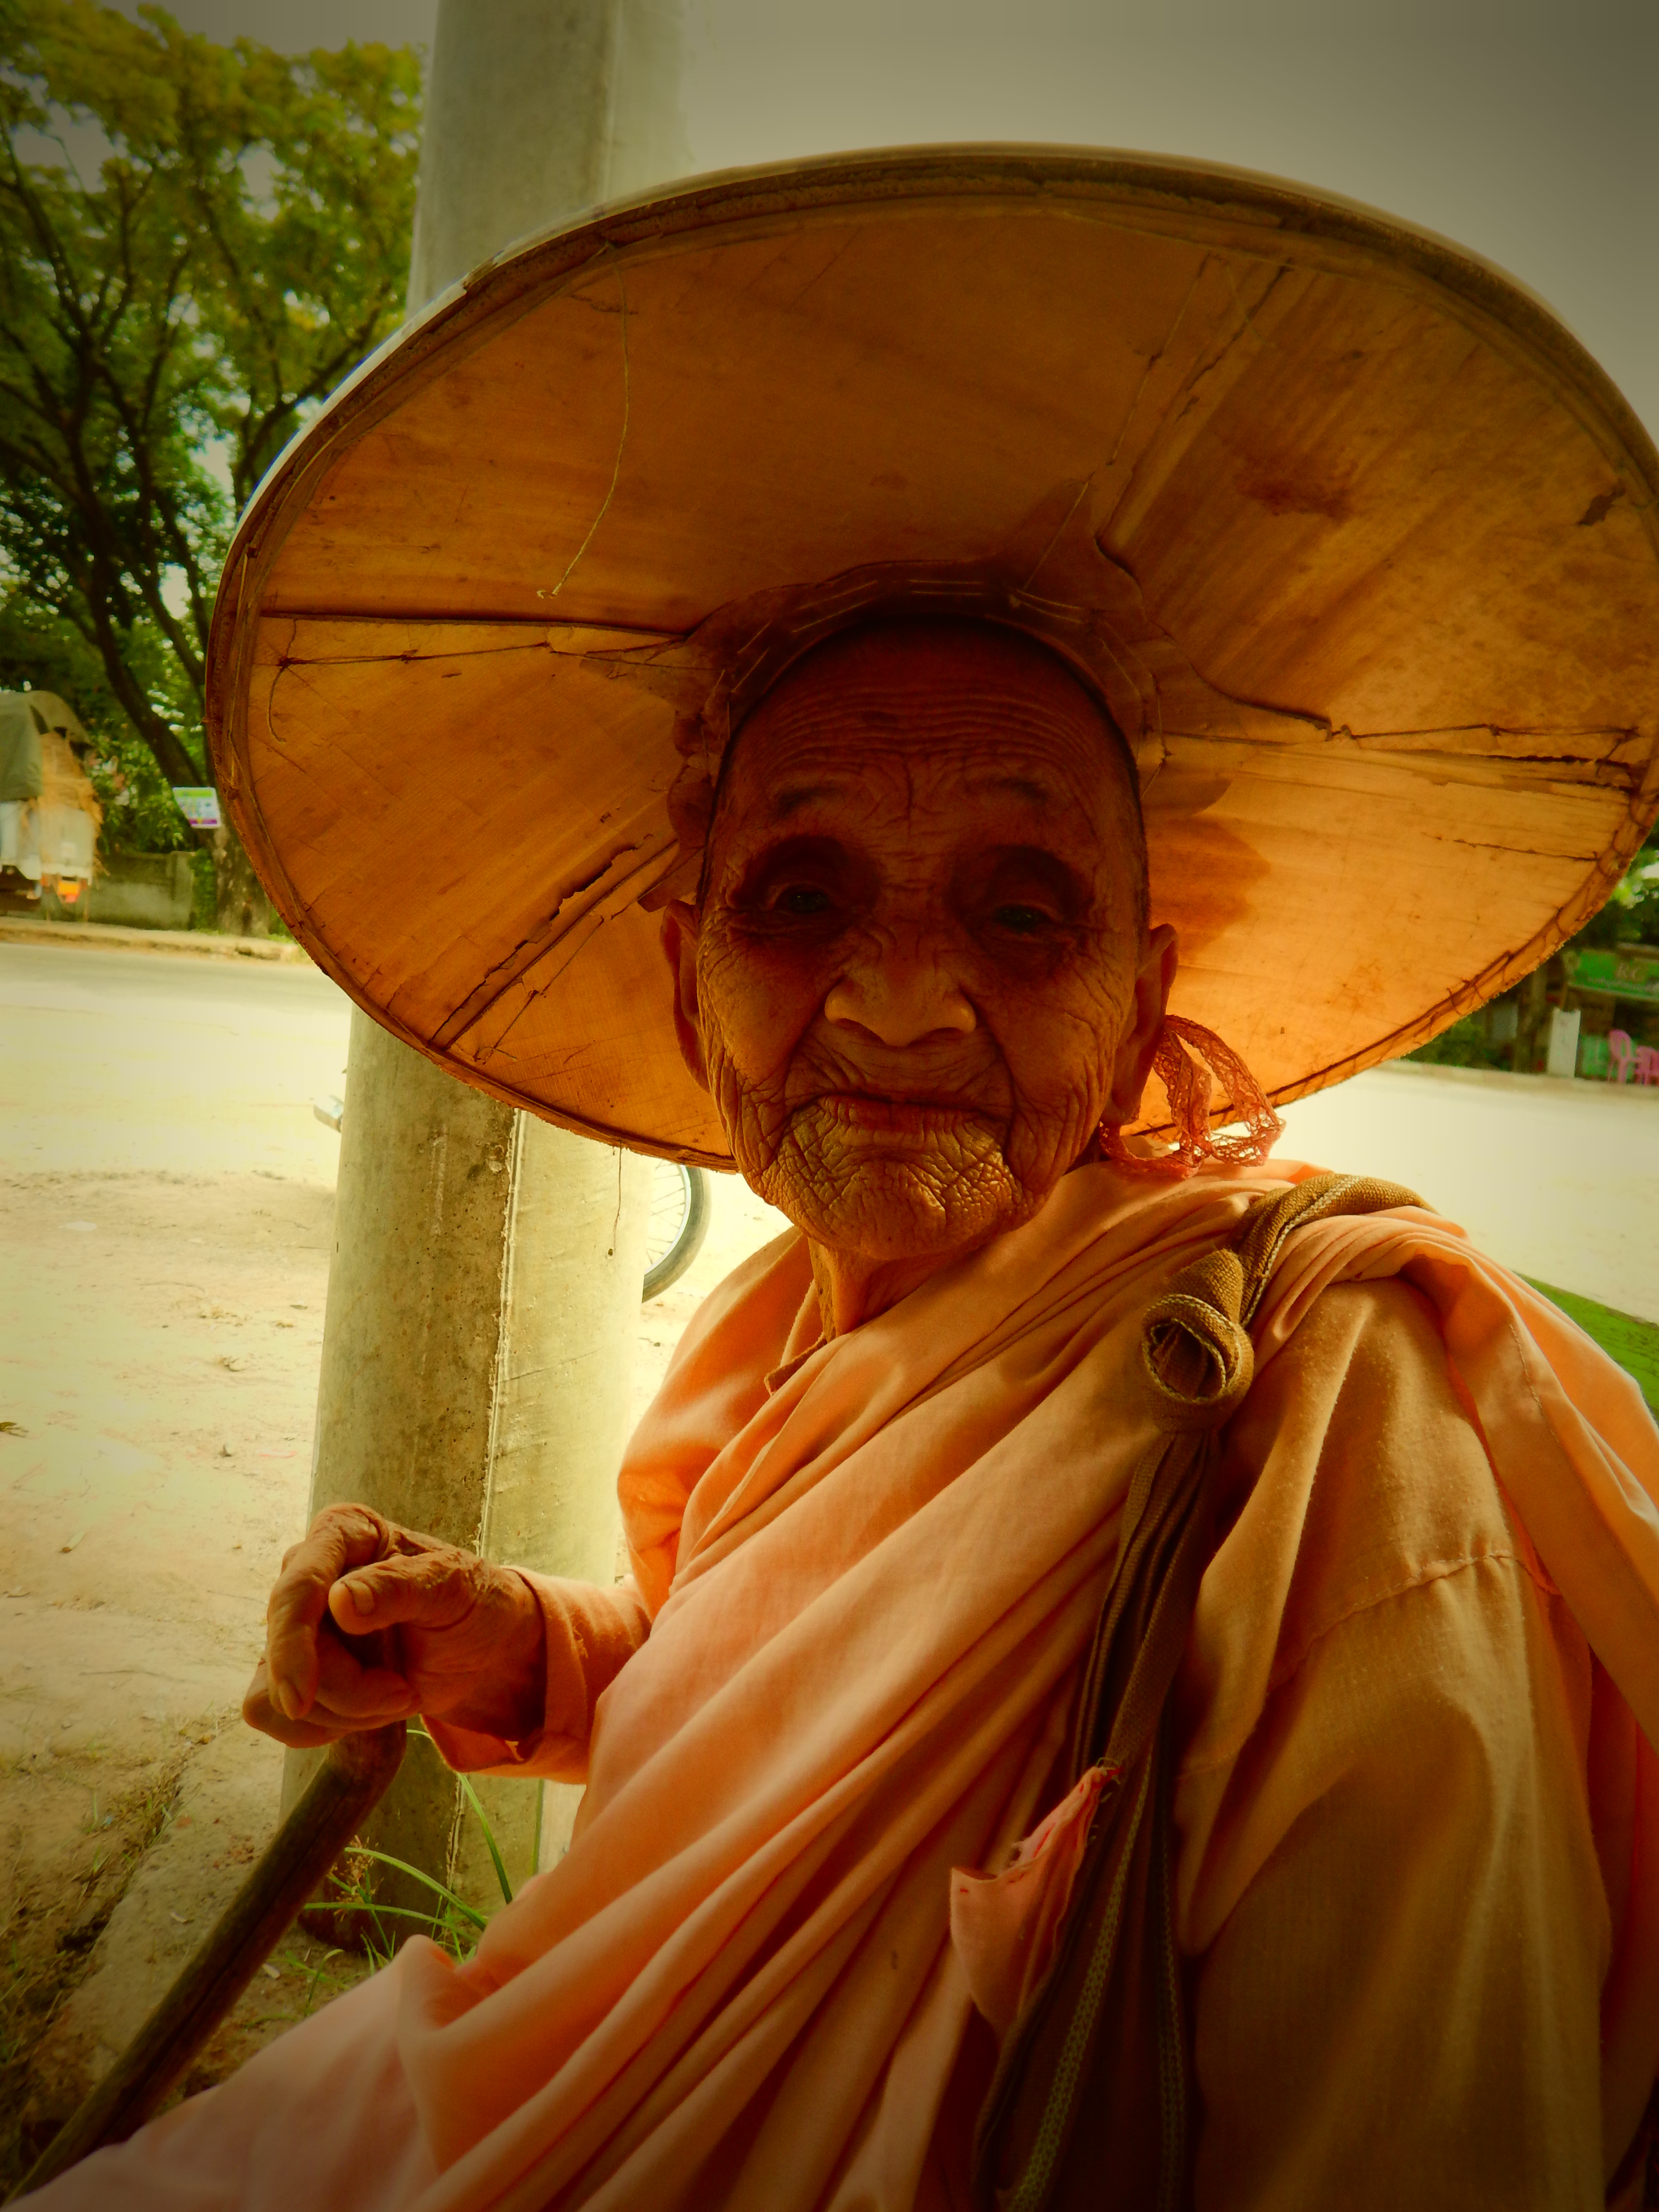 I met this 90 year old nun as she was walking along the road in the early morning collecting alms. I gave her a donation and requested to take her photo. She asked me for a copy of it, and that's how I was invited into her monastery.